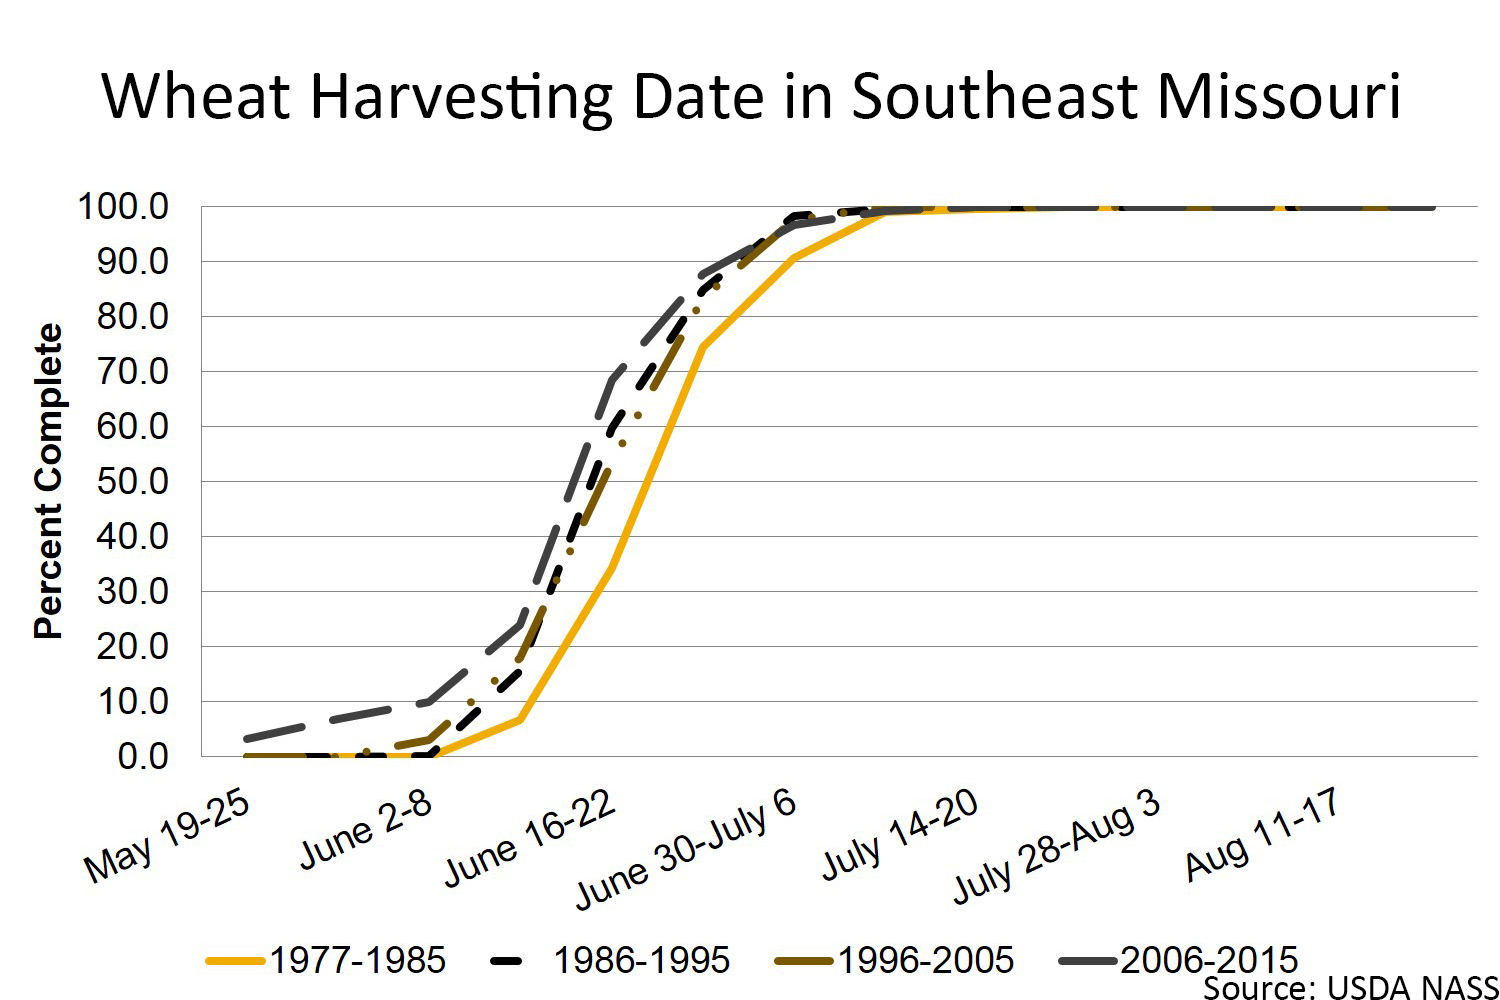 Wheat harvesting date in southeast Missouri chart